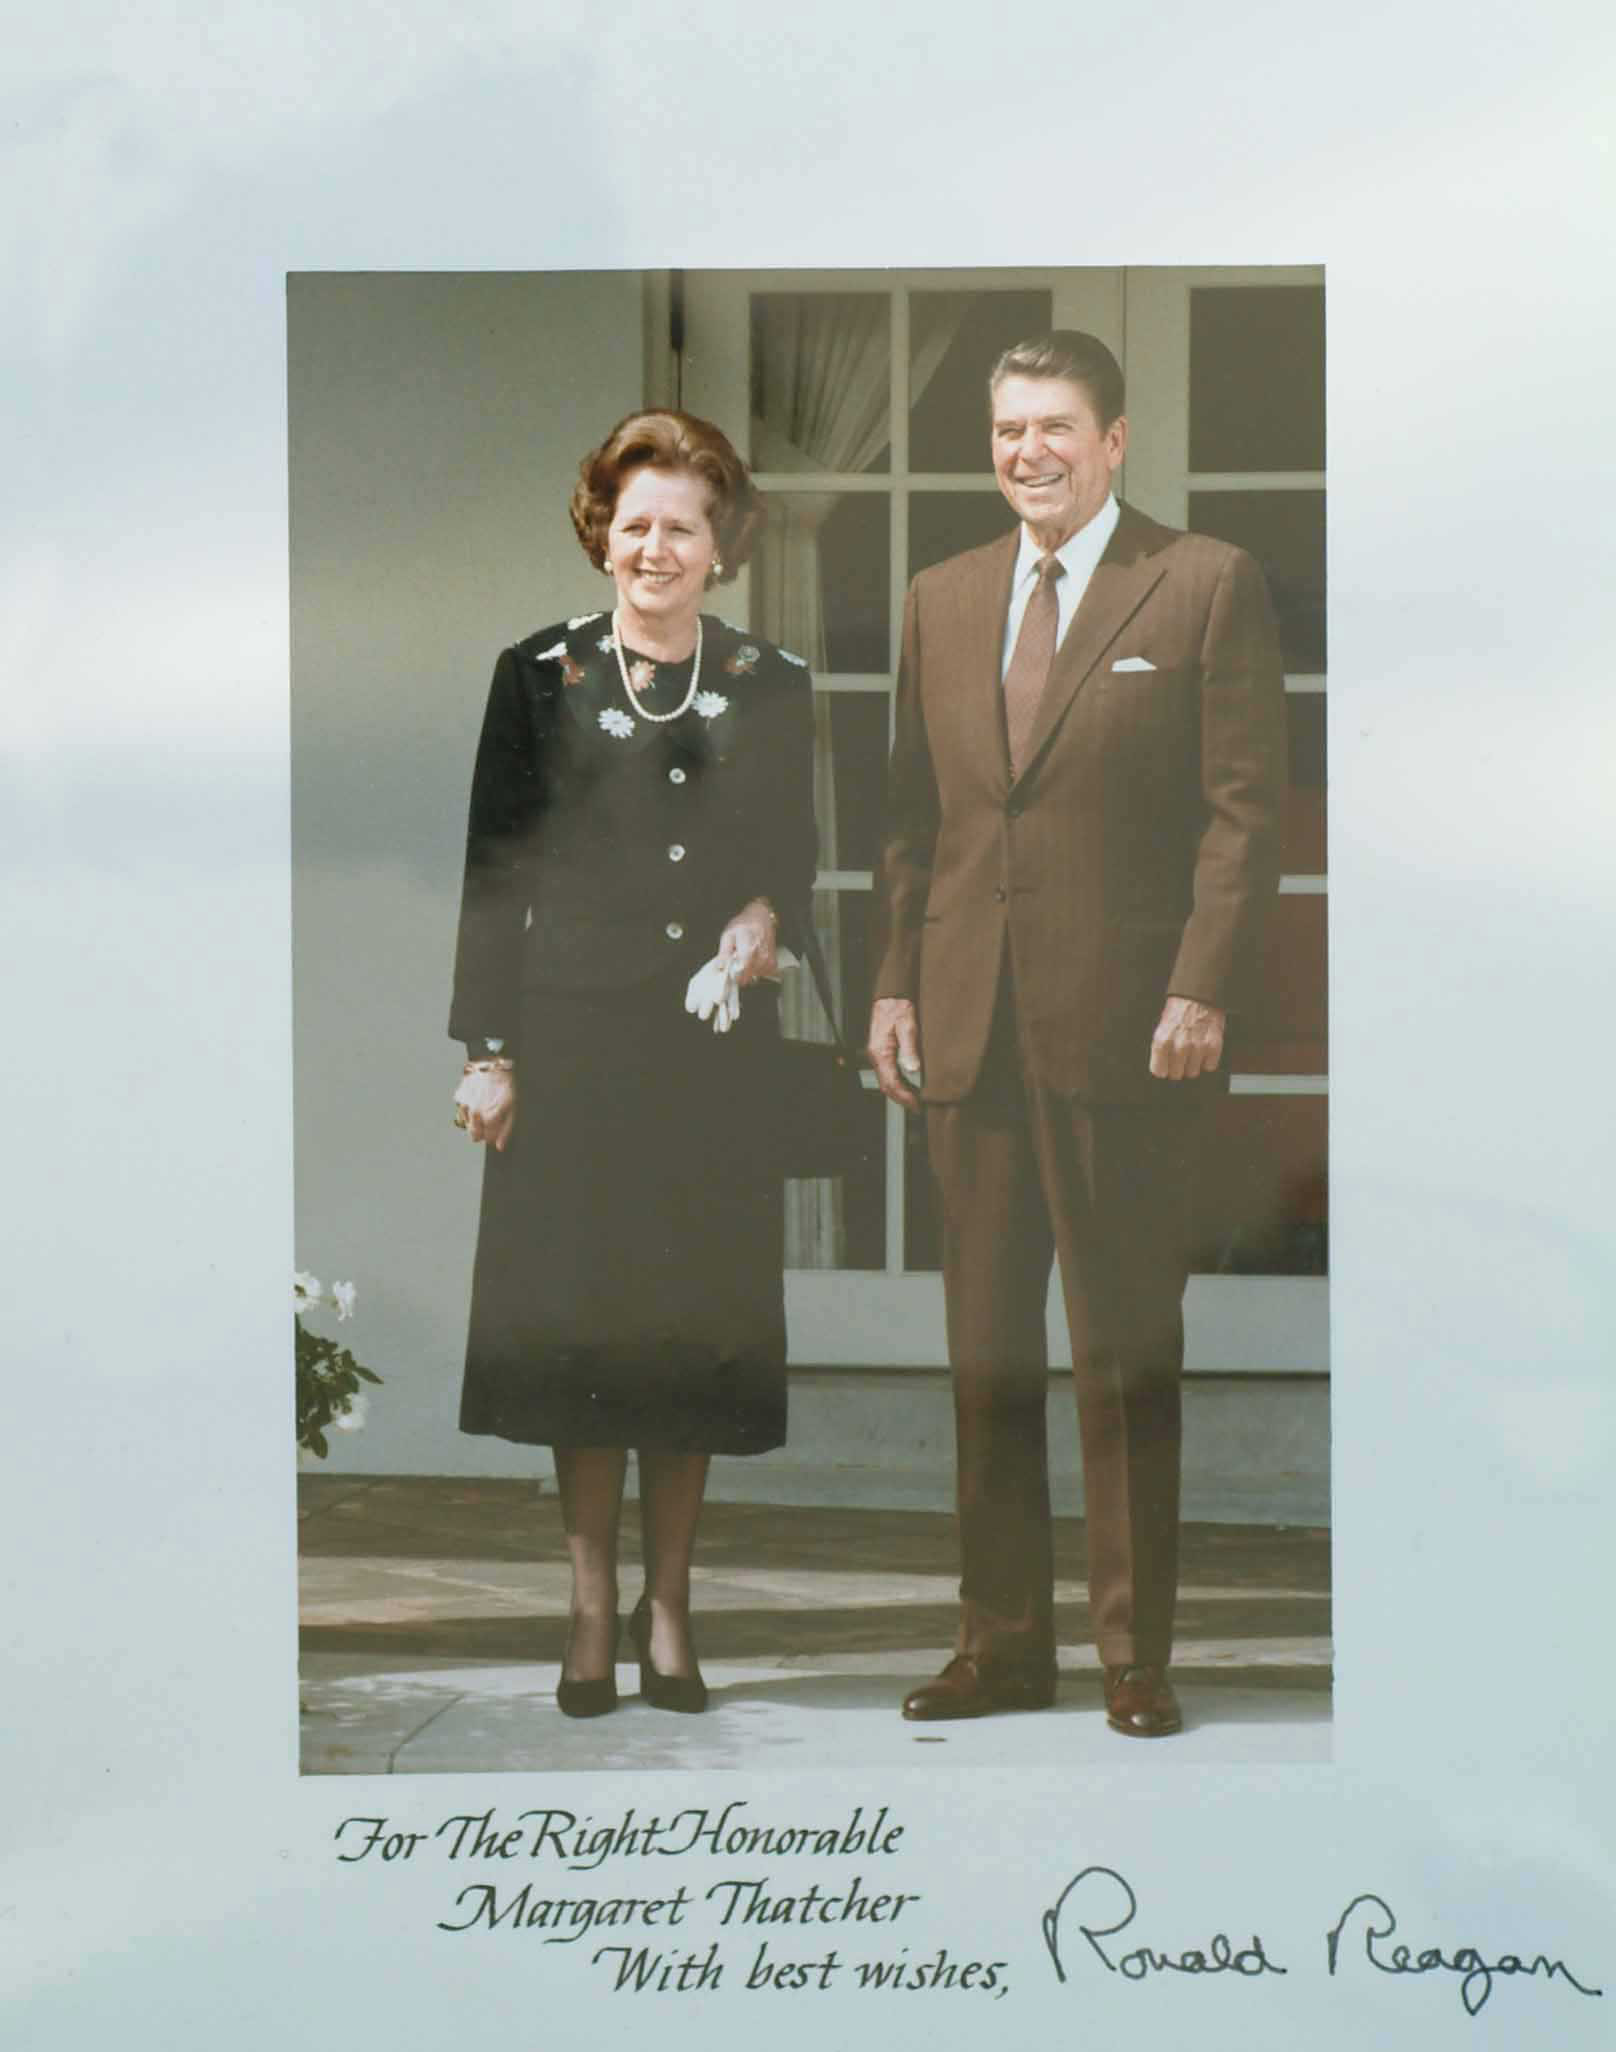 - Margaret_Thatcher_with_Ronald_Reagan